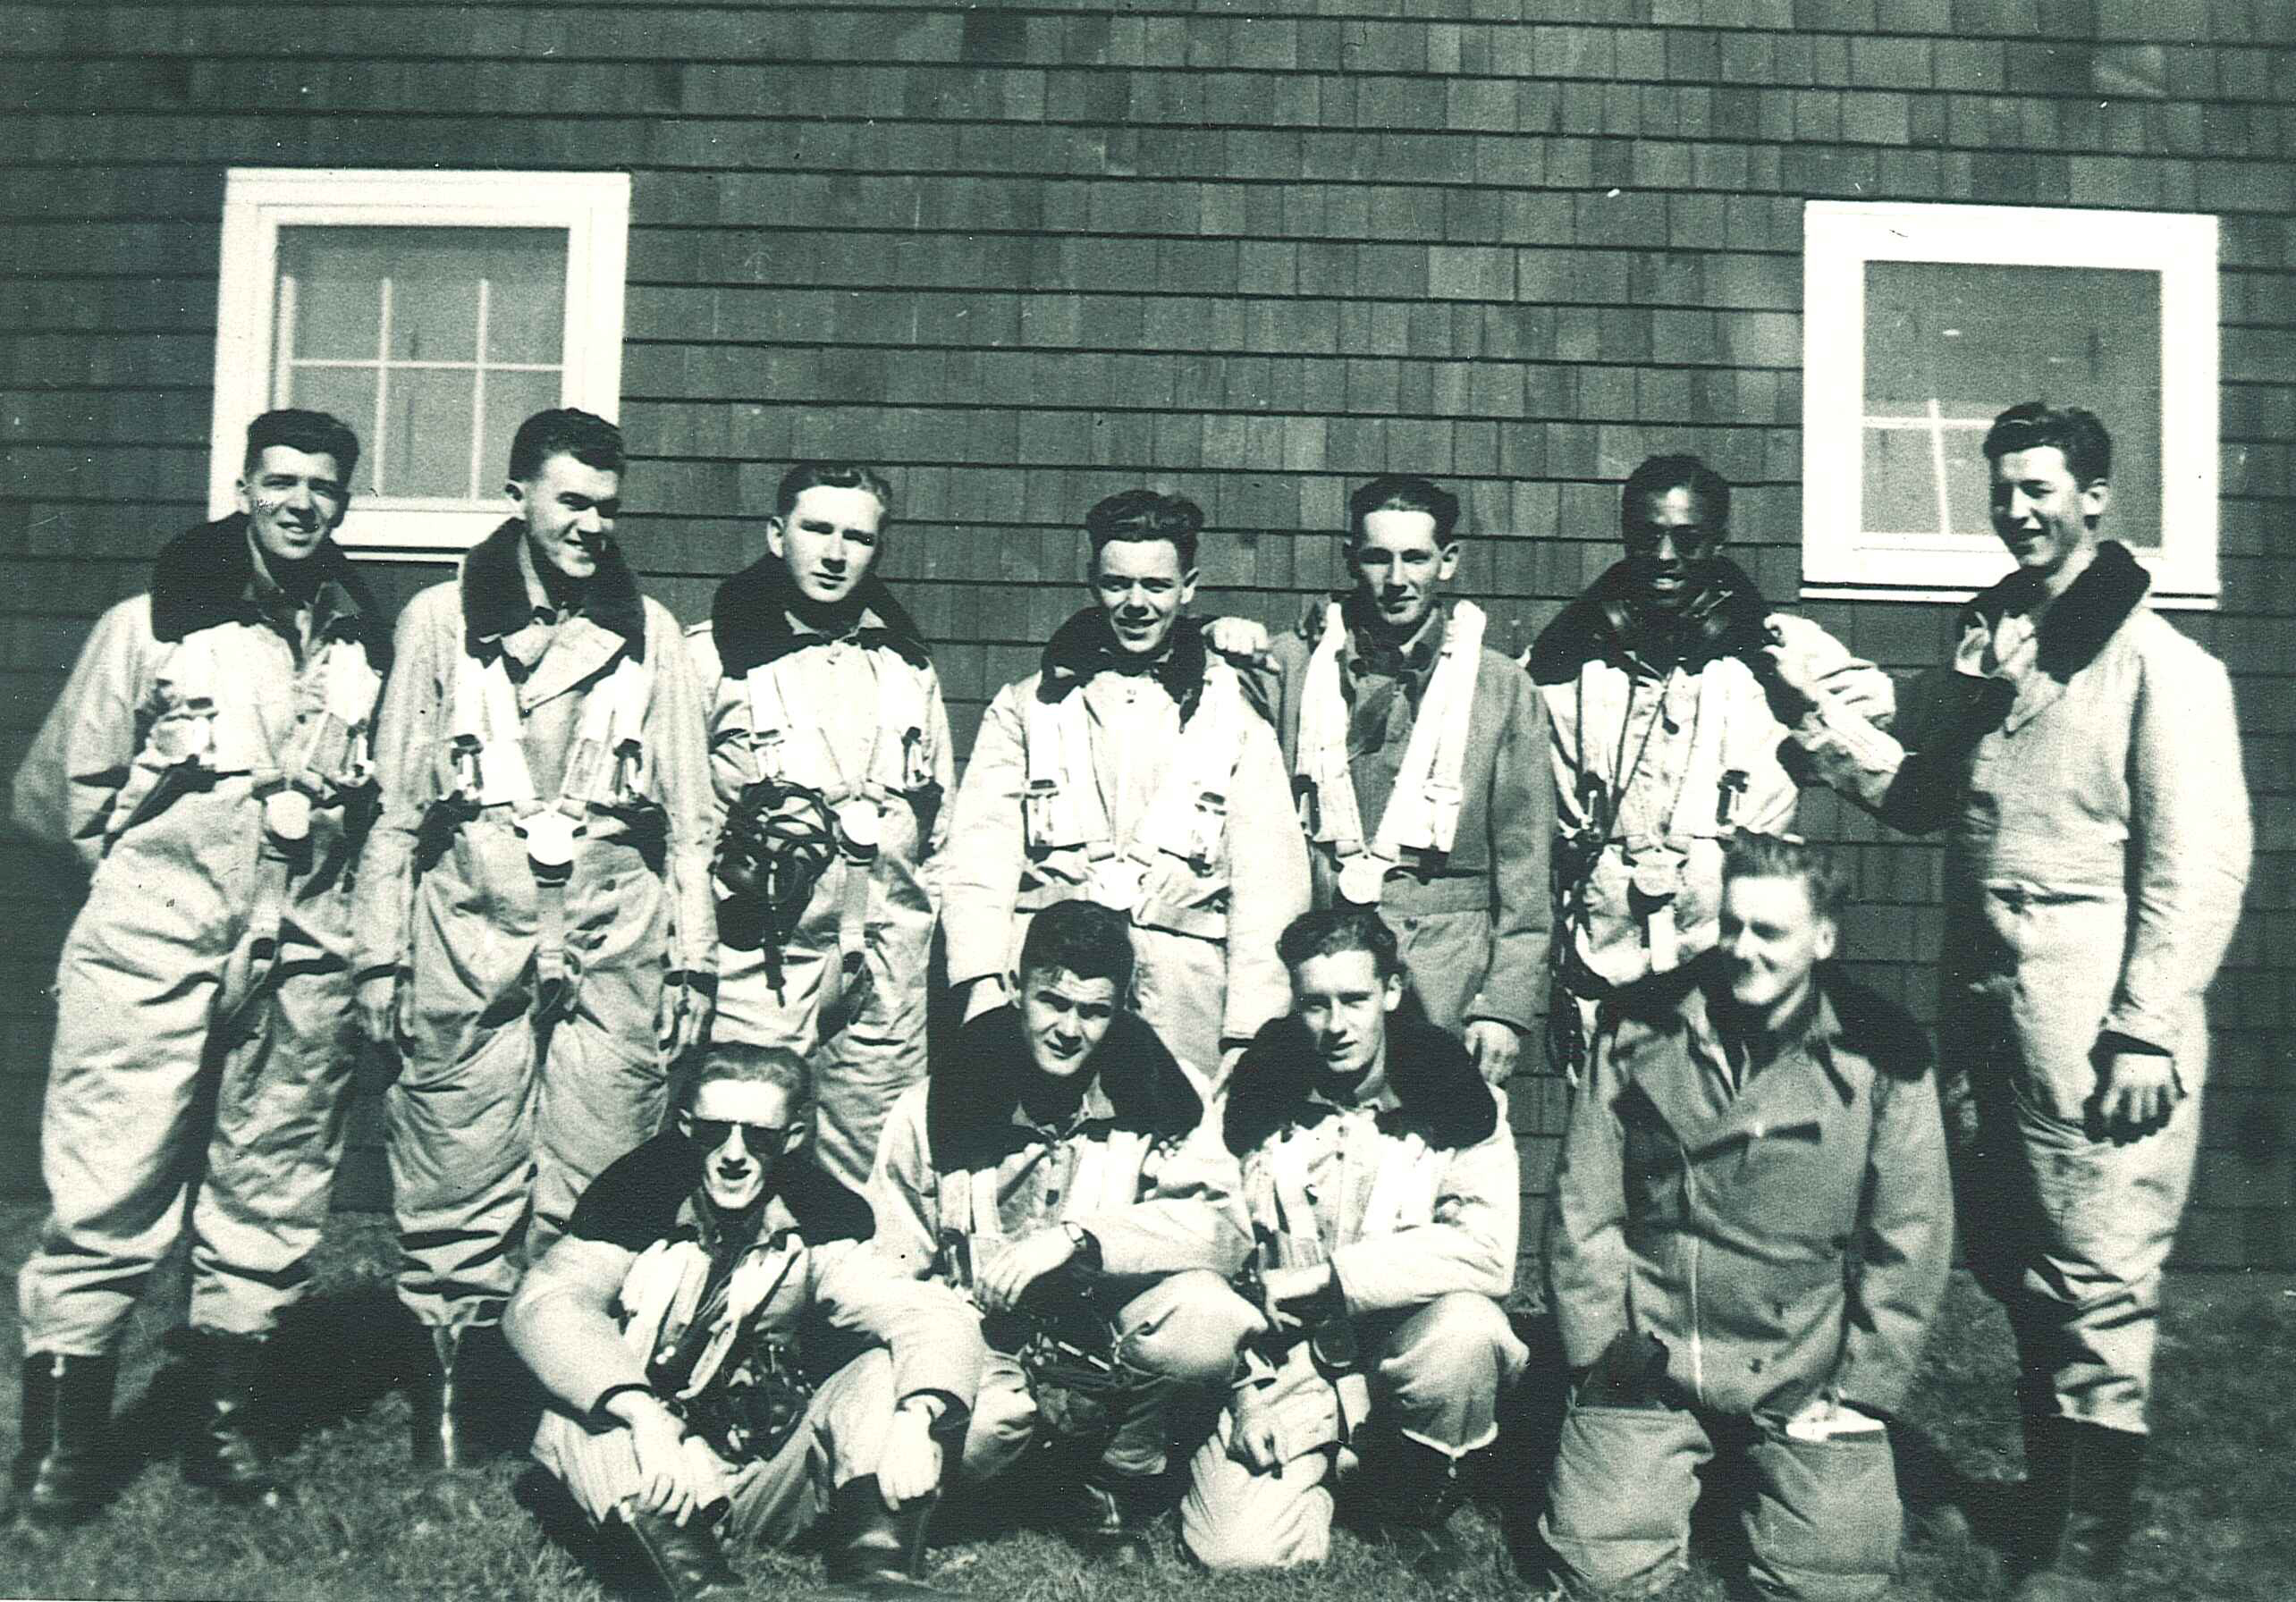 An old black and white photo of a group of 11 men in bulky air force flying suits, standing or kneeling in front of the shingled exterior wall of a building.